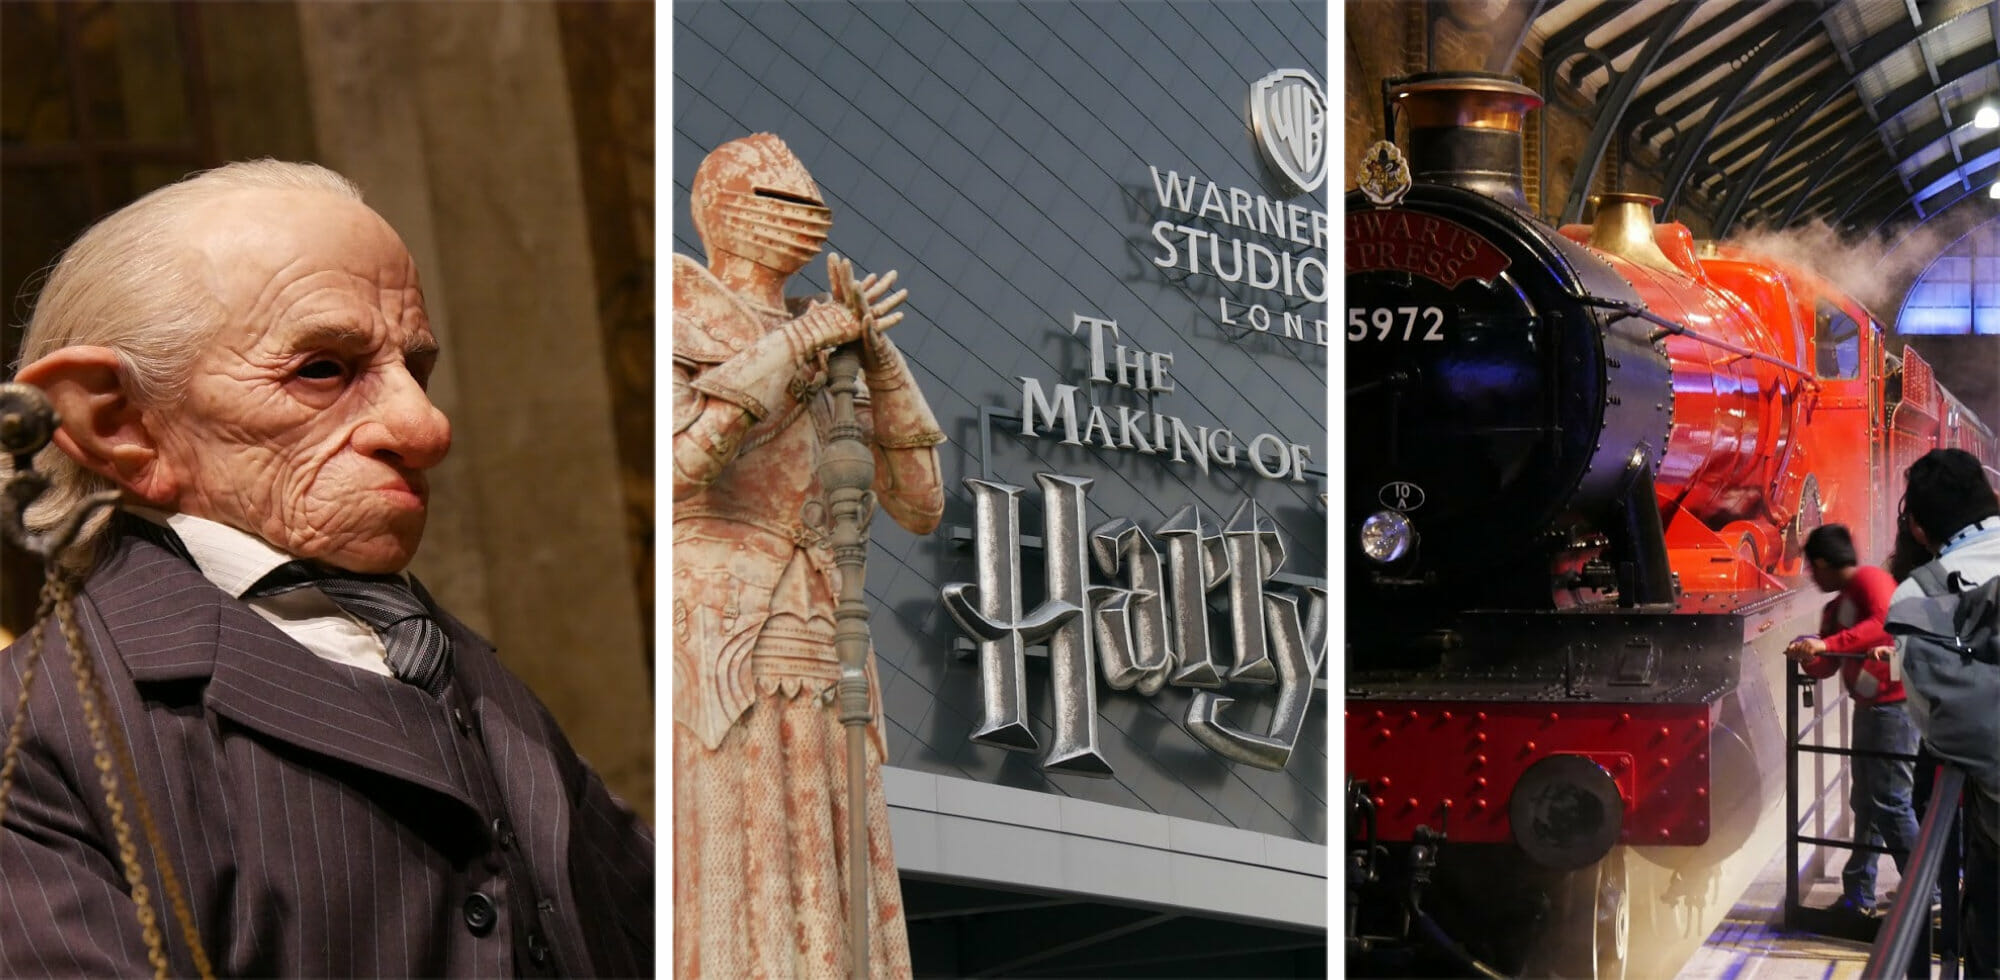 How to Get from London to the Warner Brother's Harry Potter Studio Tour